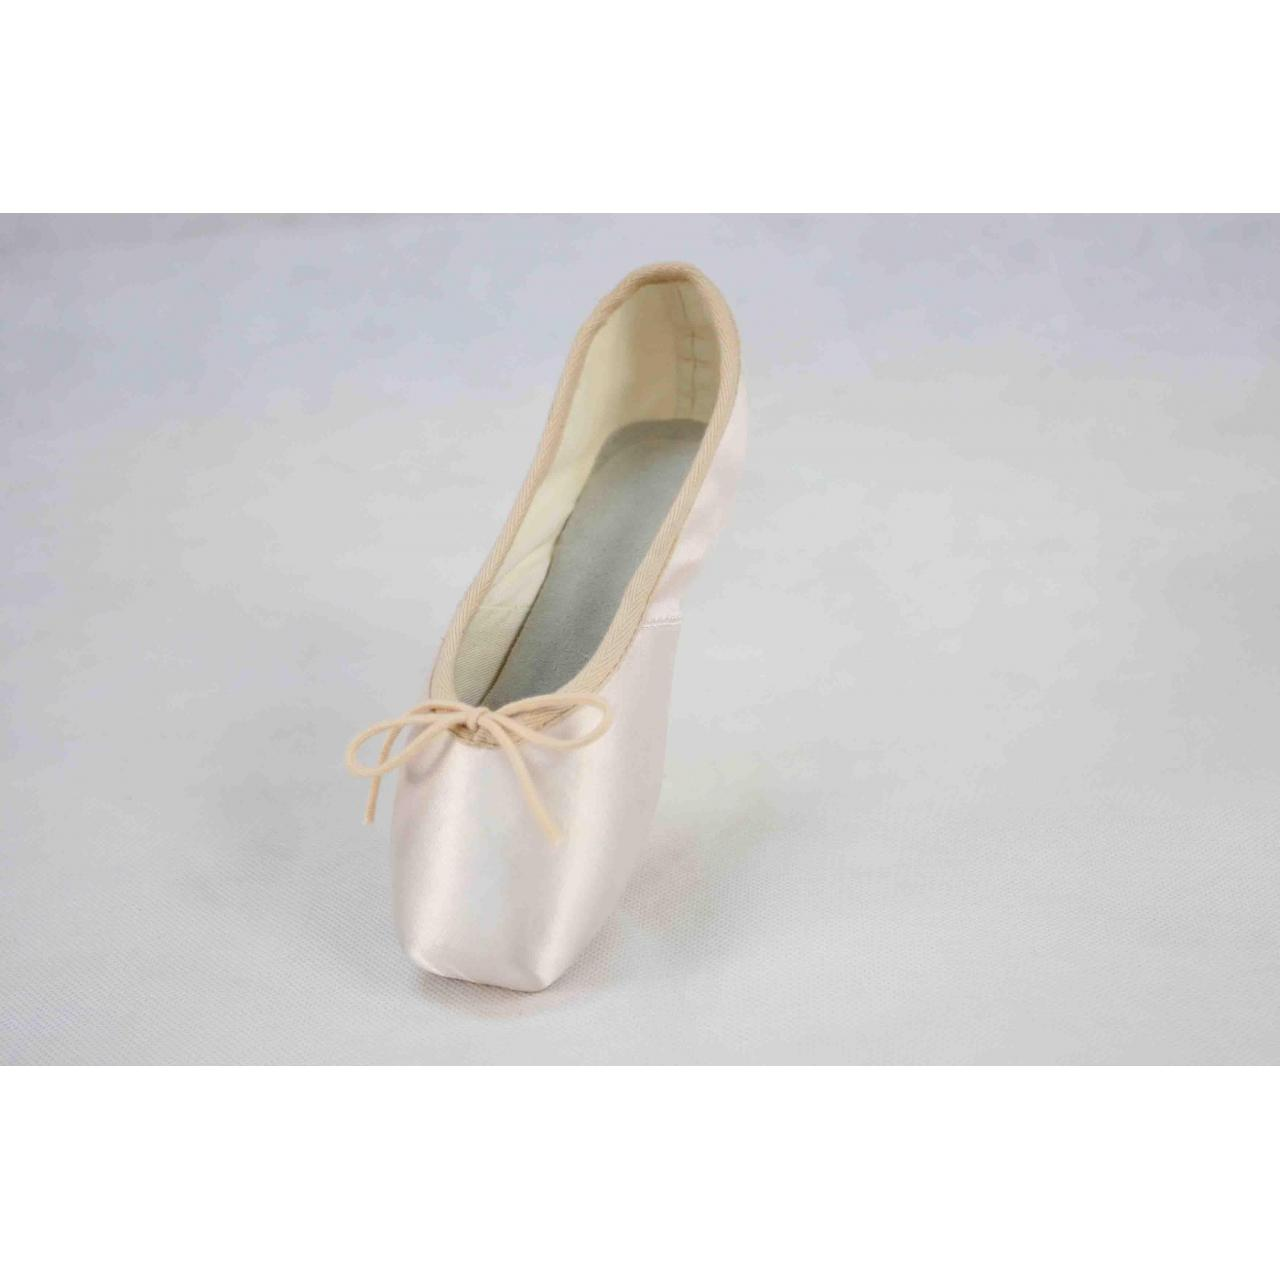 Best Light Industrial Products pointeballetshoe 2231524216 wholesale